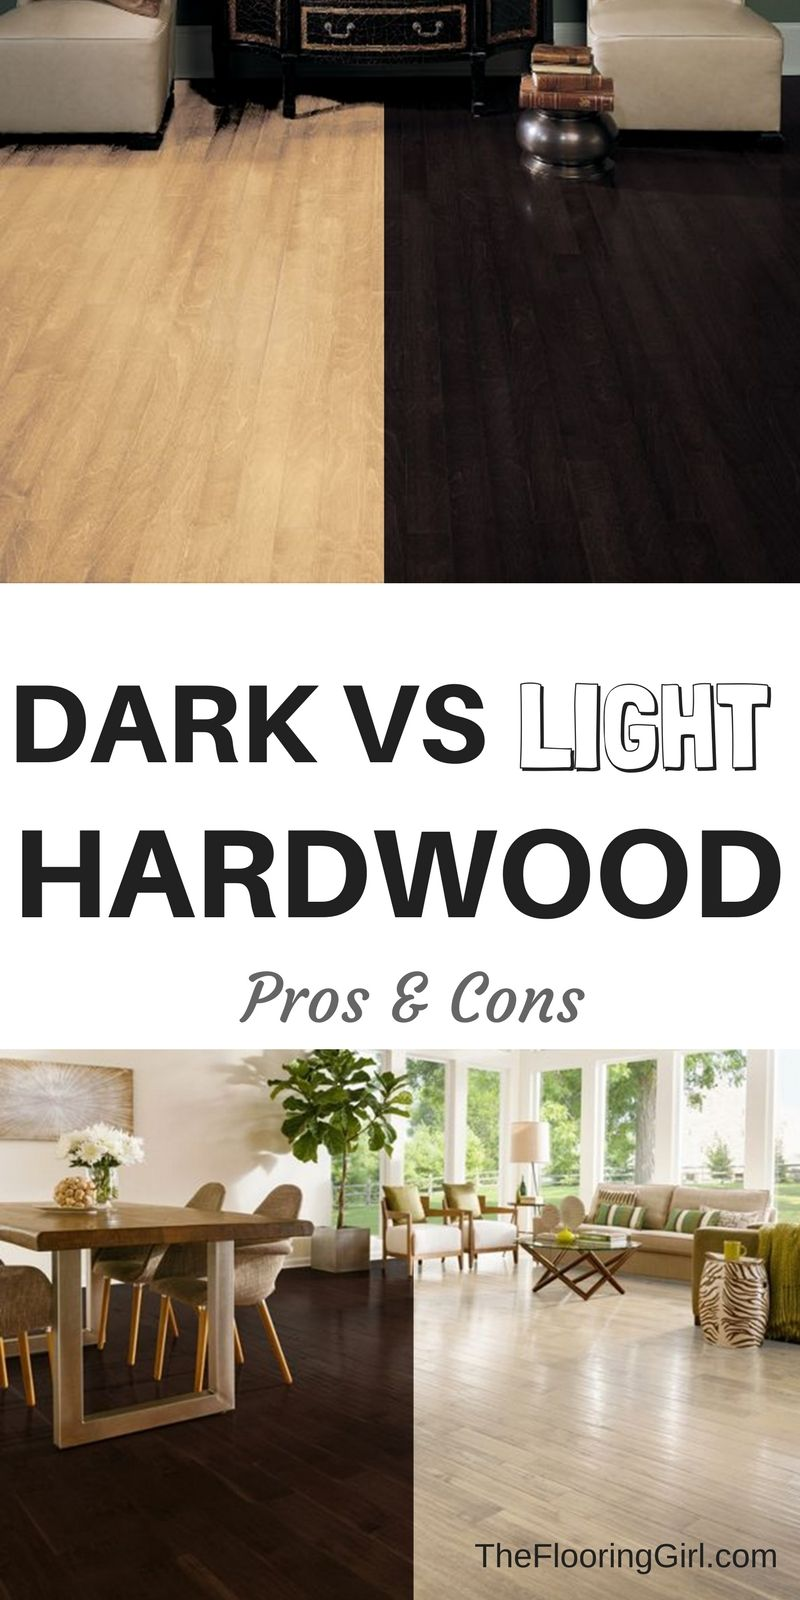 Dark vs Light Hardwood flooring. Pros and cons for light